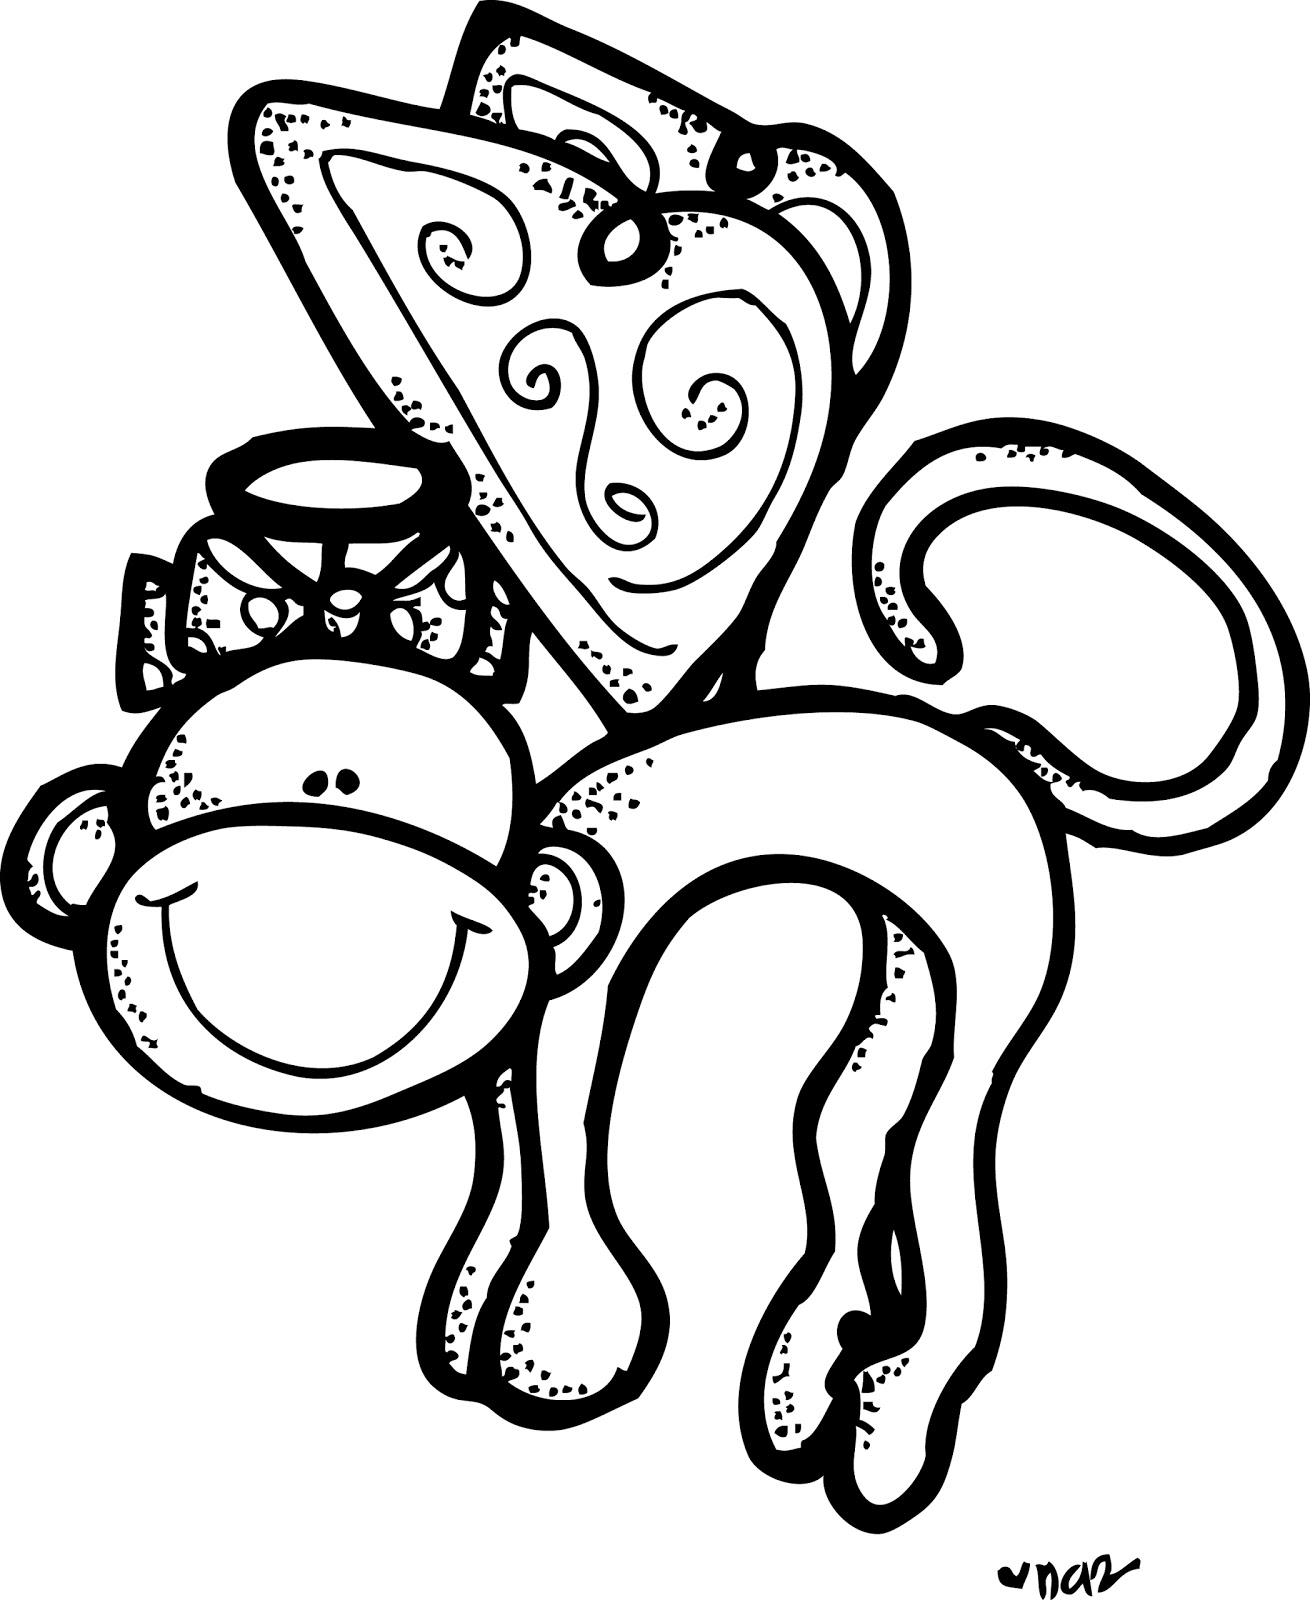 flying monkey - Baby Shower Monkey Coloring Pages